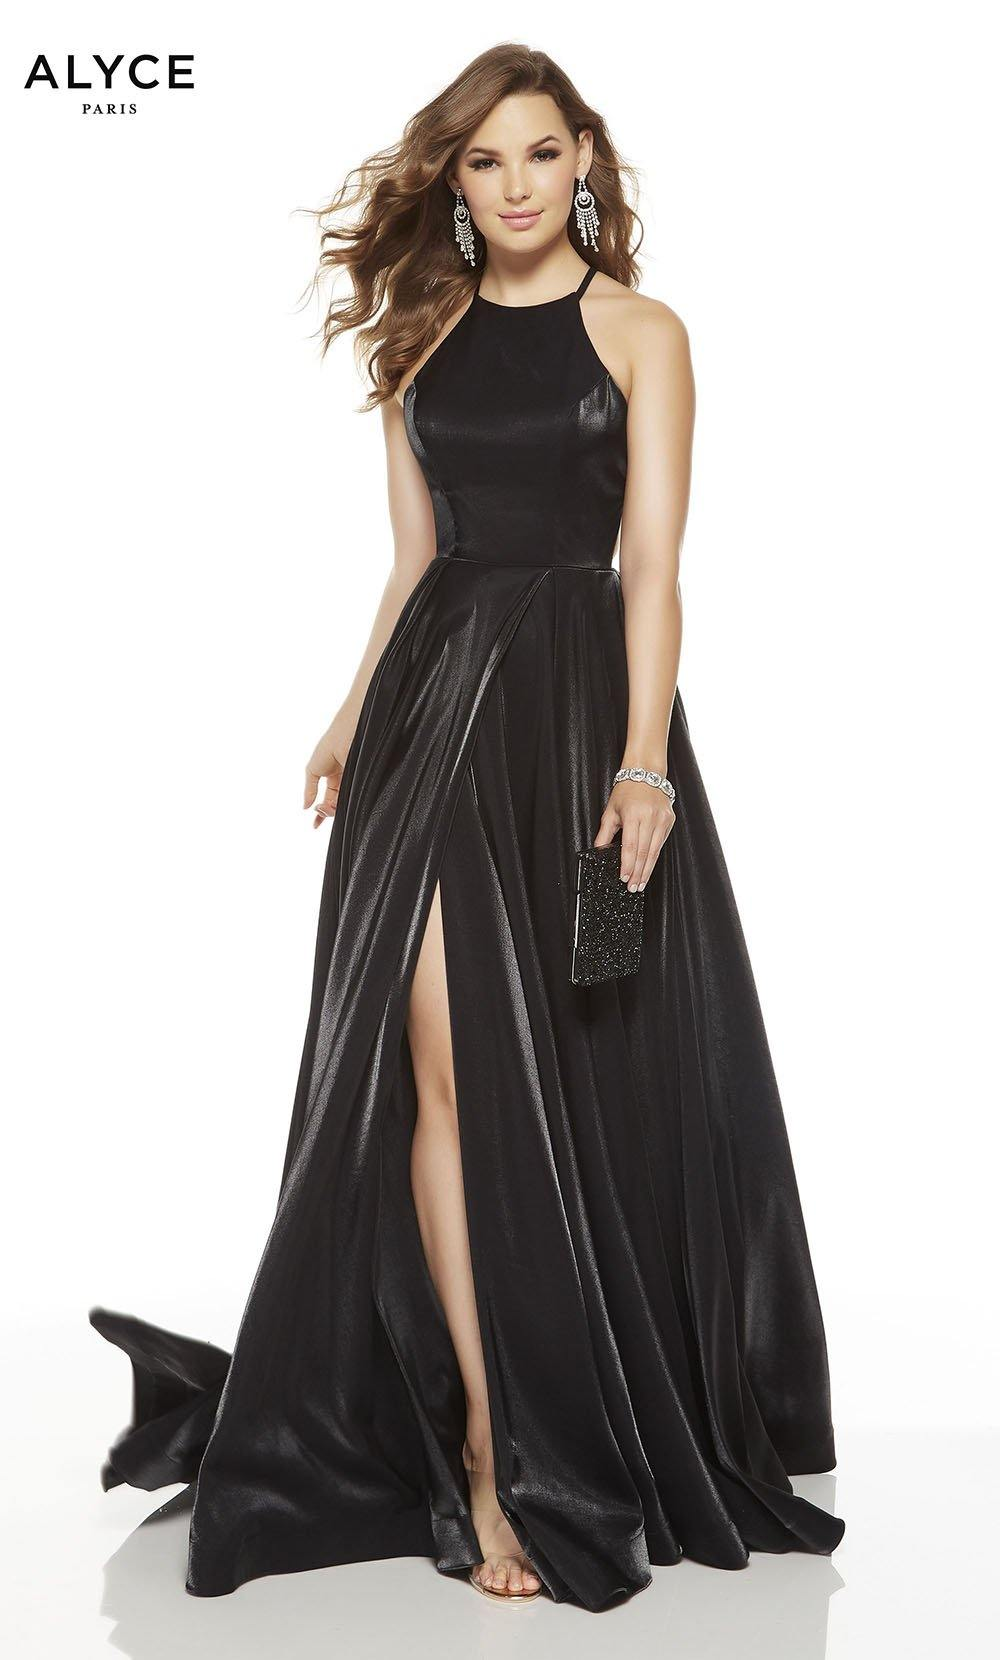 Black red-carpet dress with a halter neckline and a slit